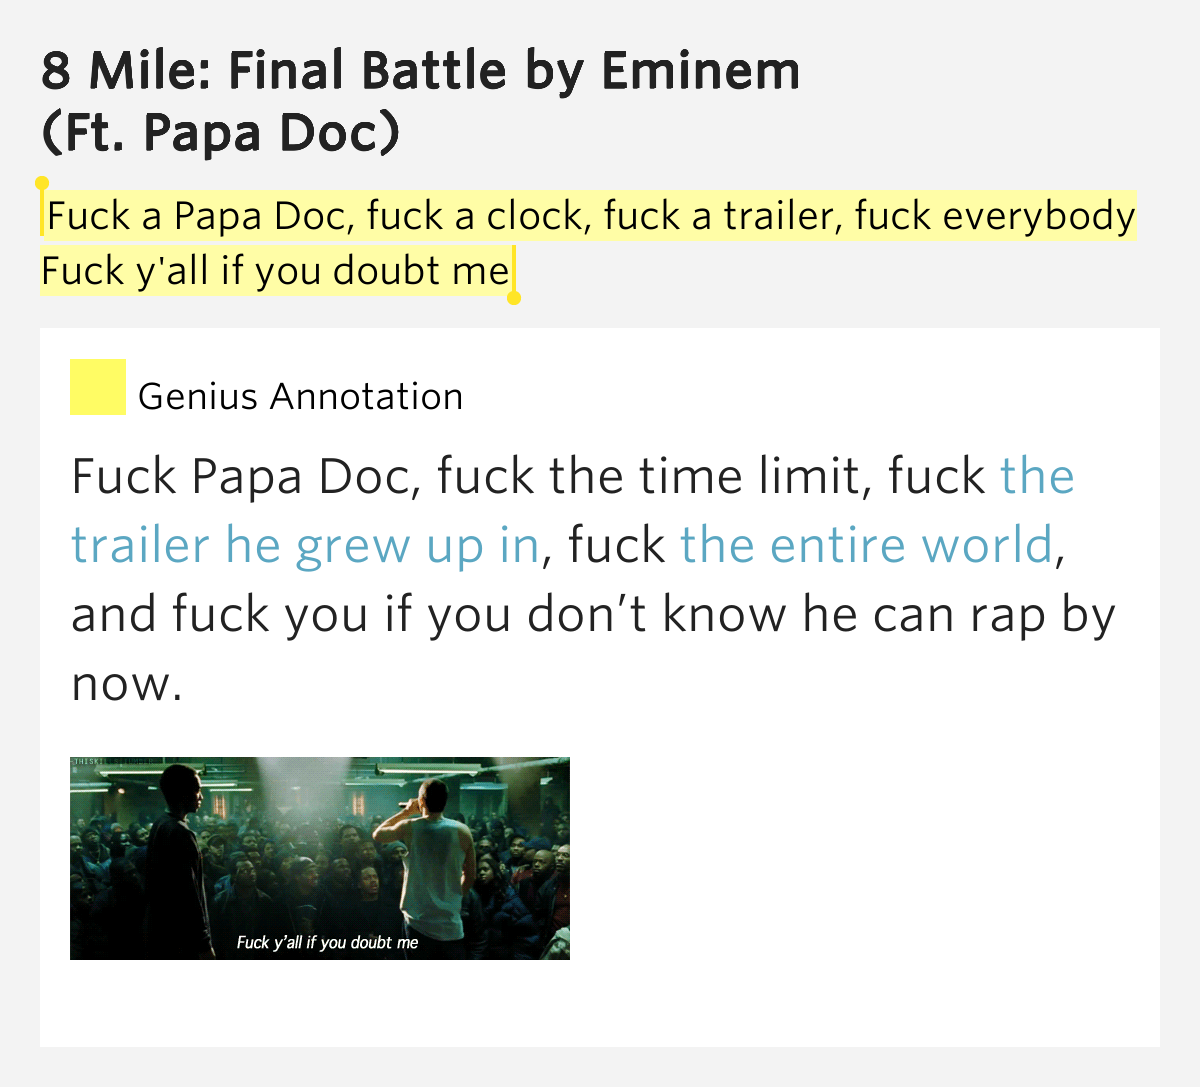 And too fuck all y all lyrics magnificent